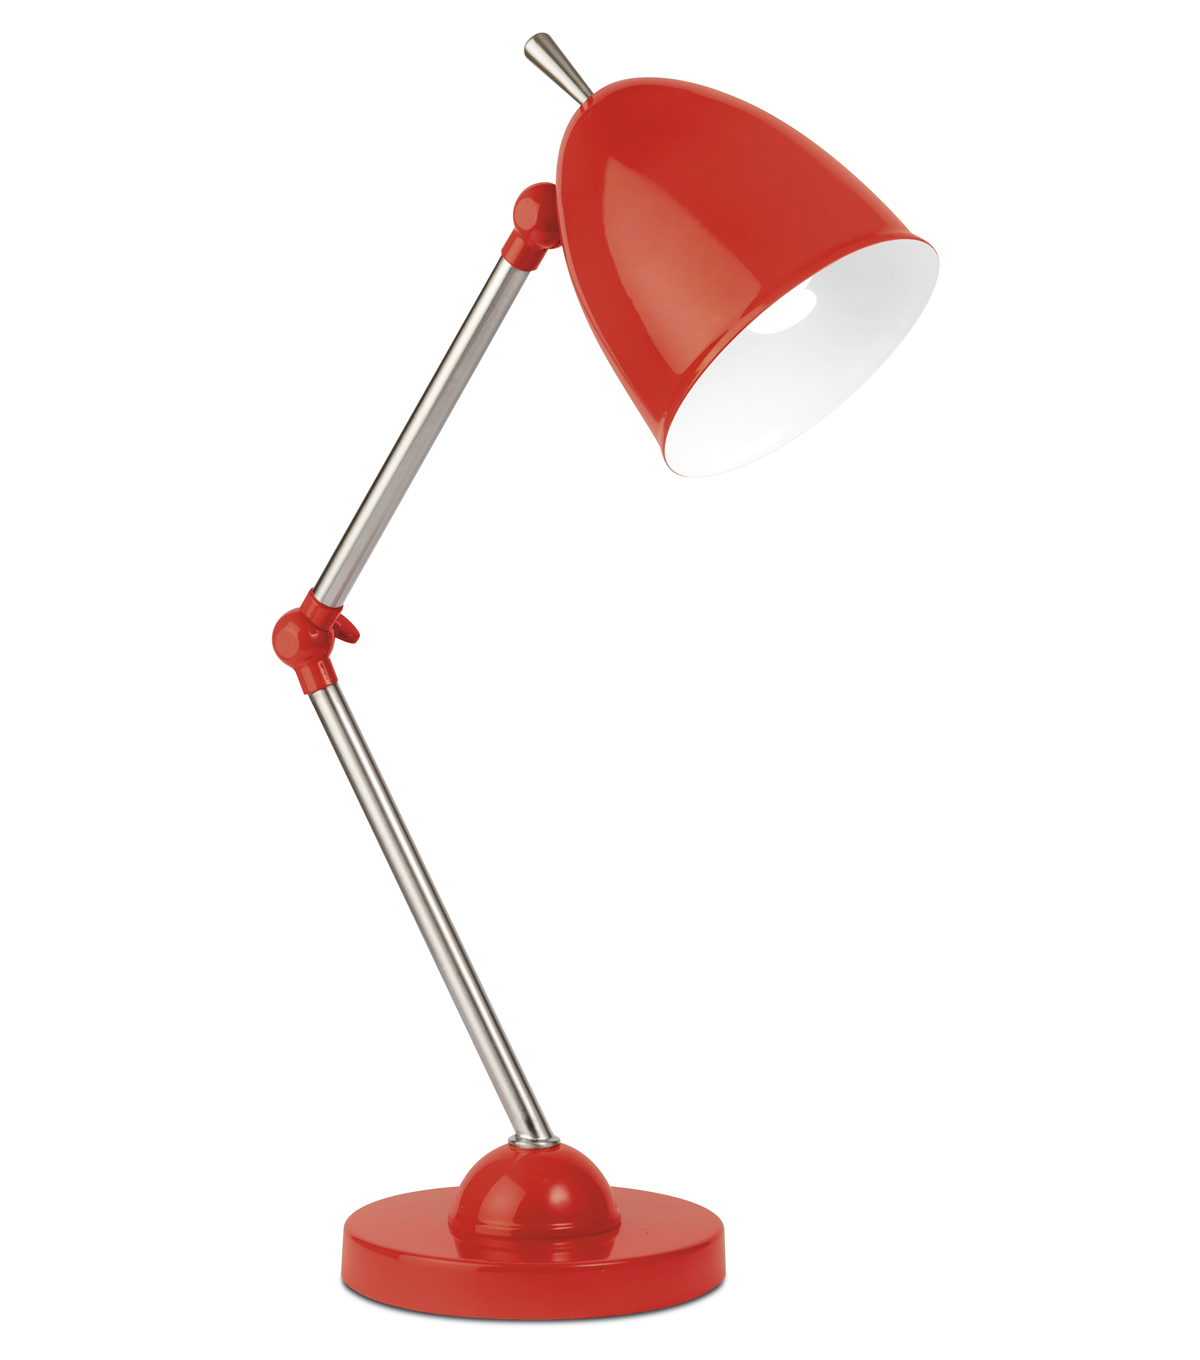 OttLite 13W Articulating Desk Lamp-Red